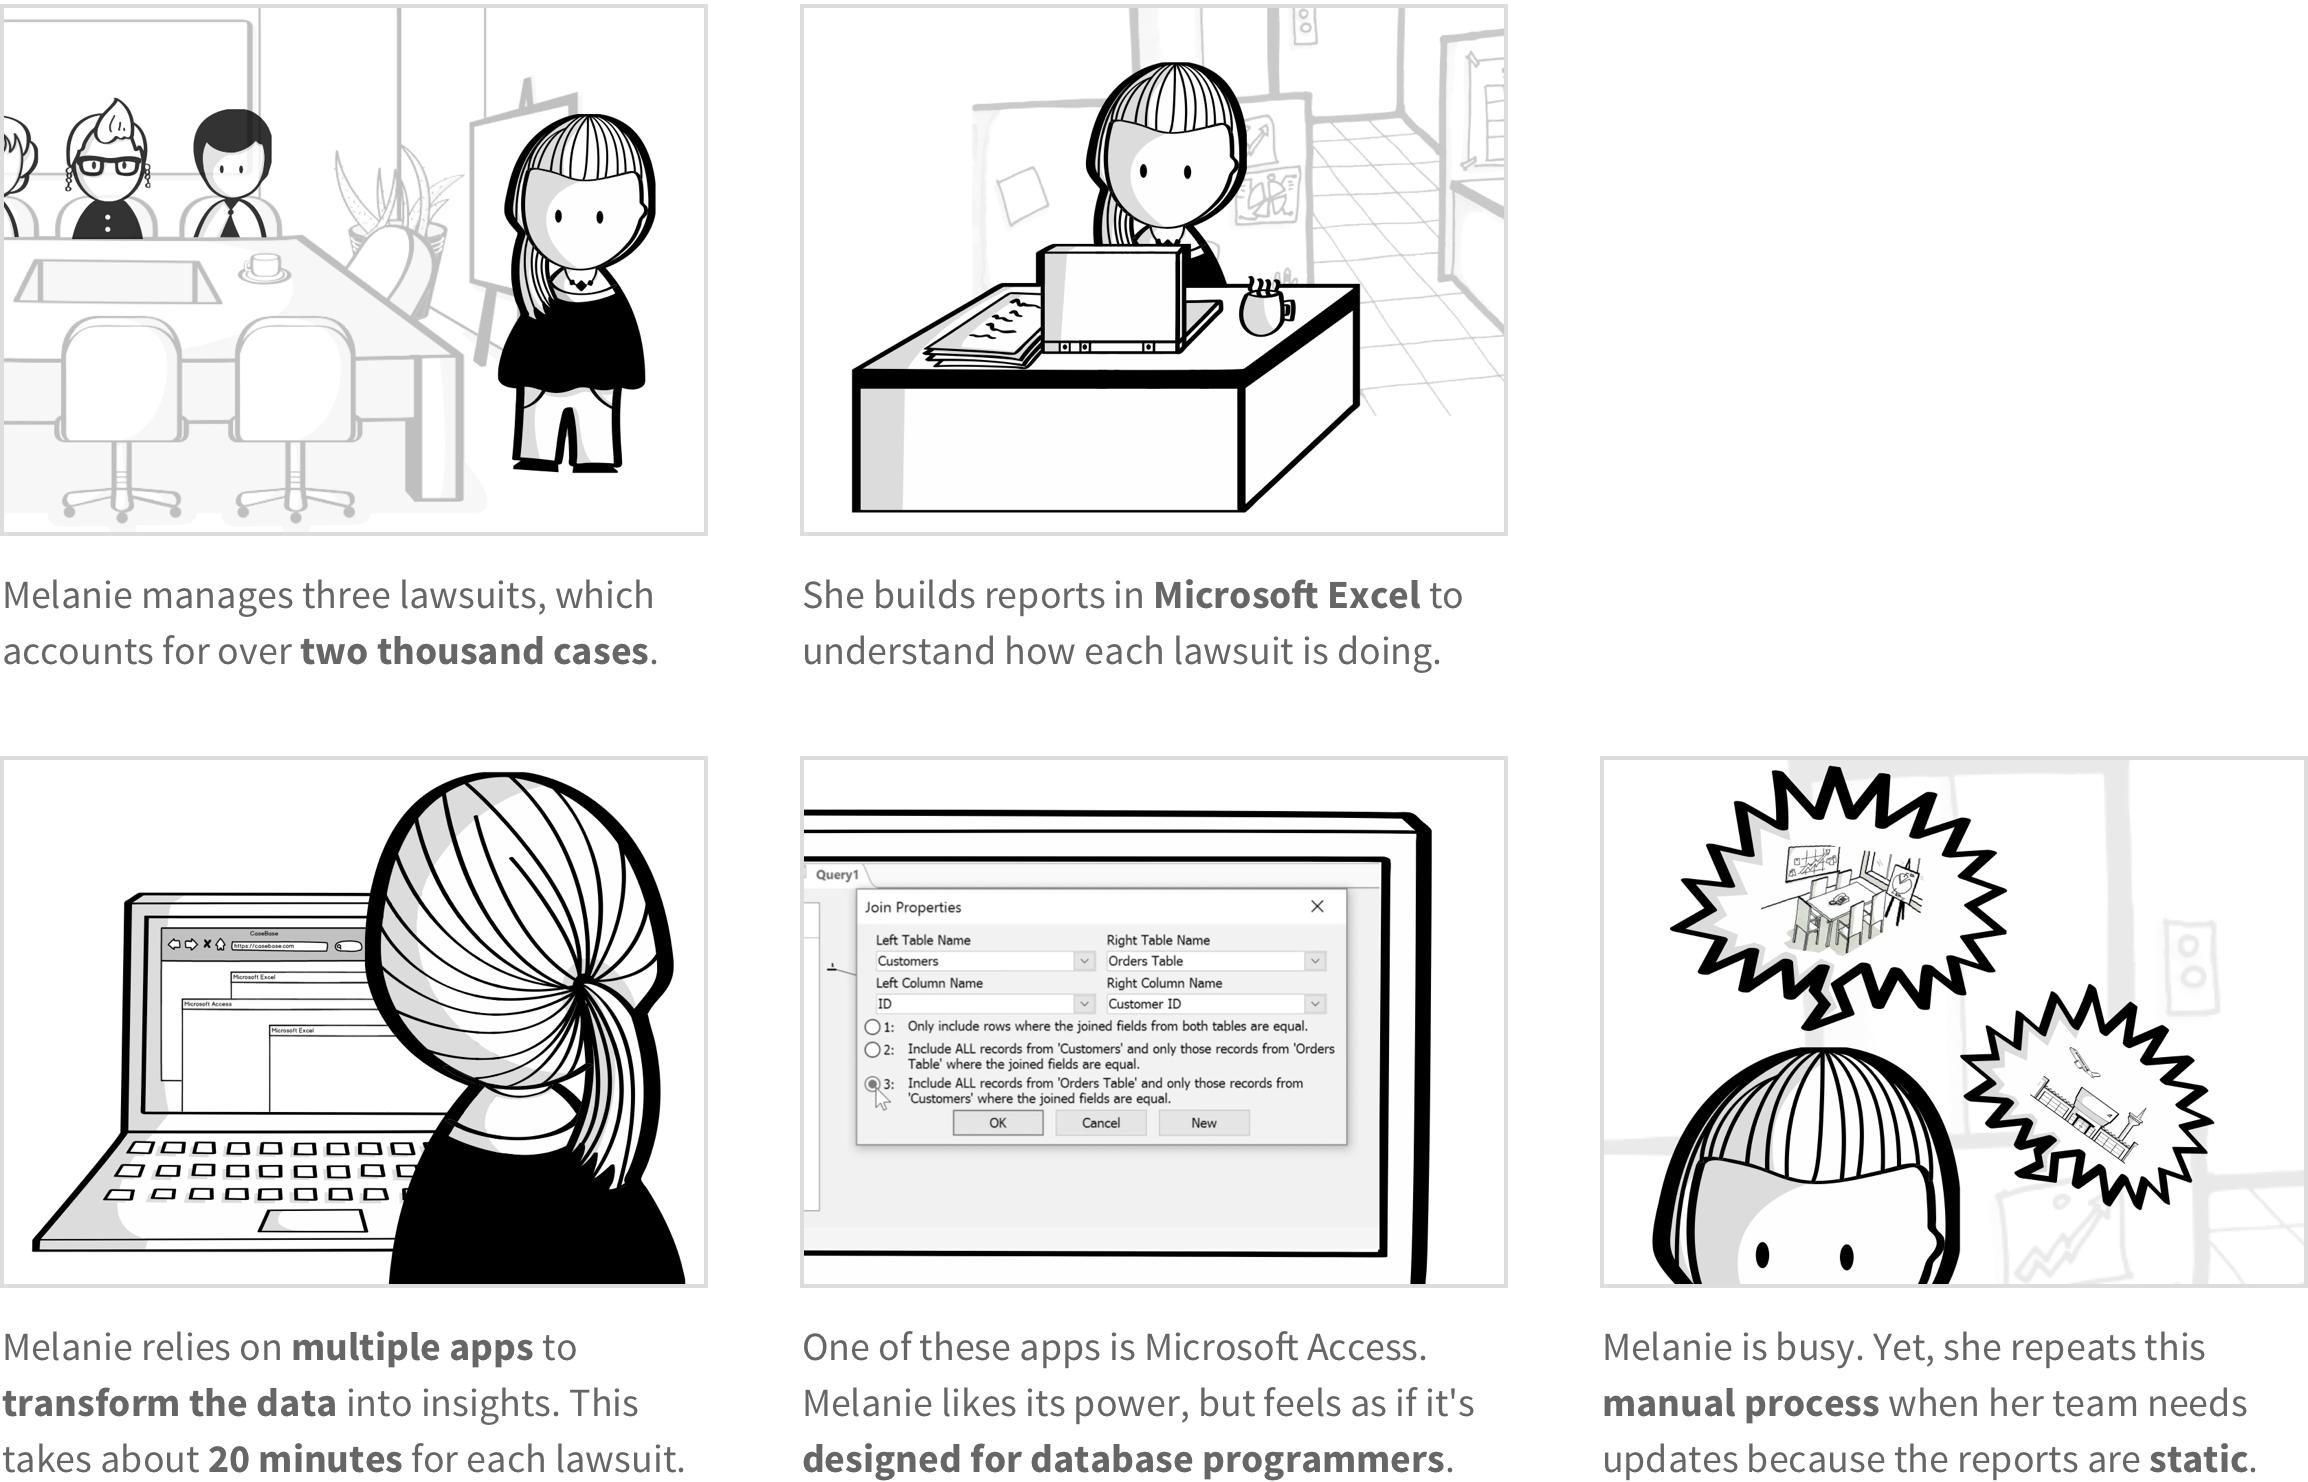 Storyboard illustrations from SAP's   Scenes  Kit .